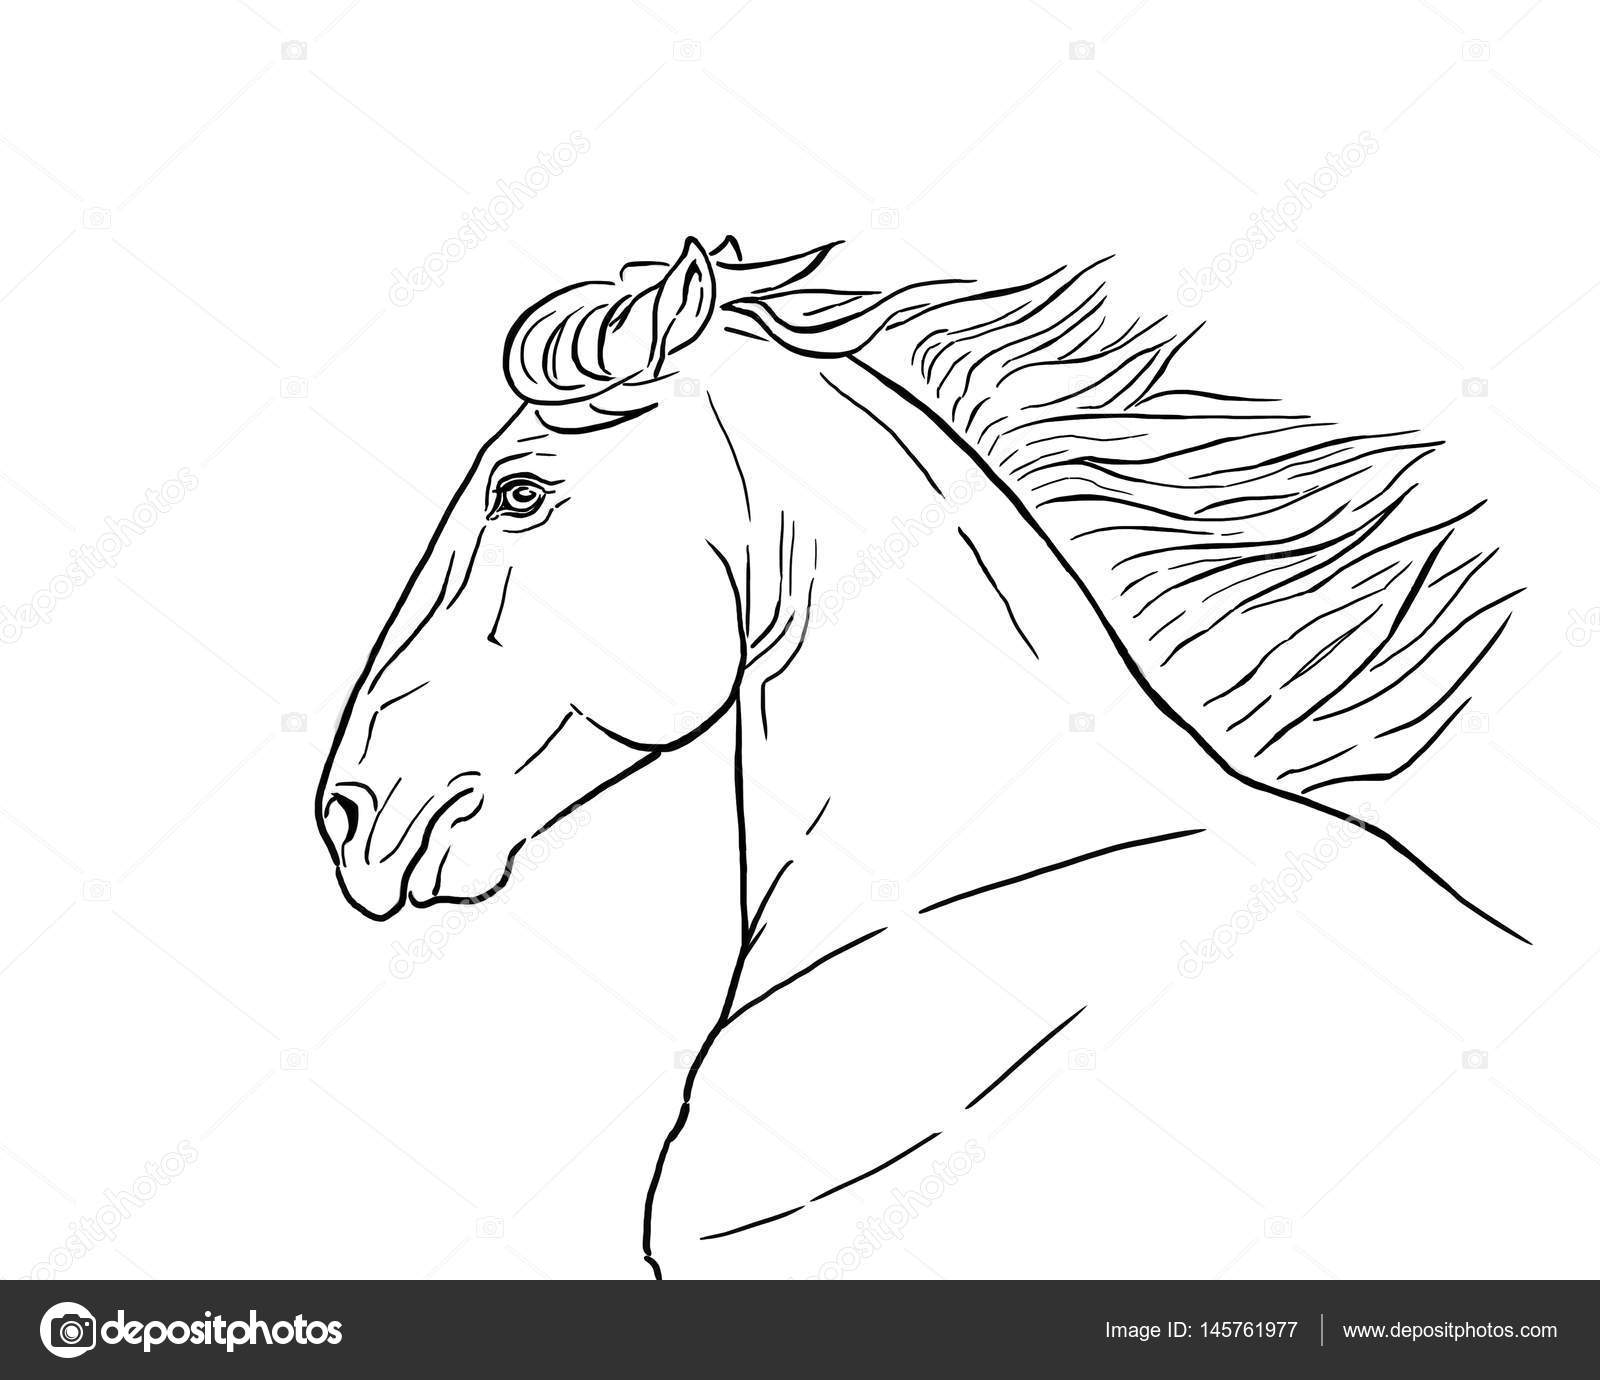 Execution De Tete De Cheval Illustration Realiste Raster Contour